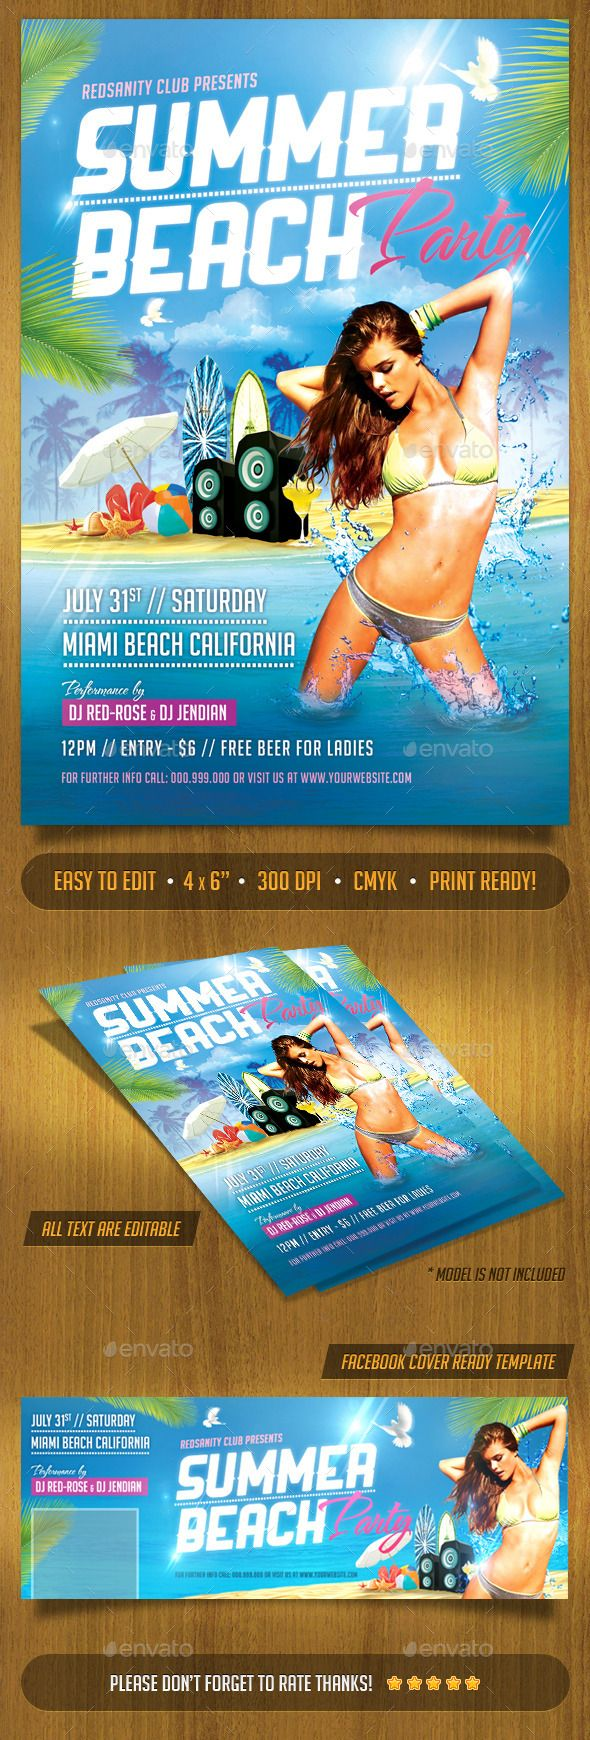 party flyers printing